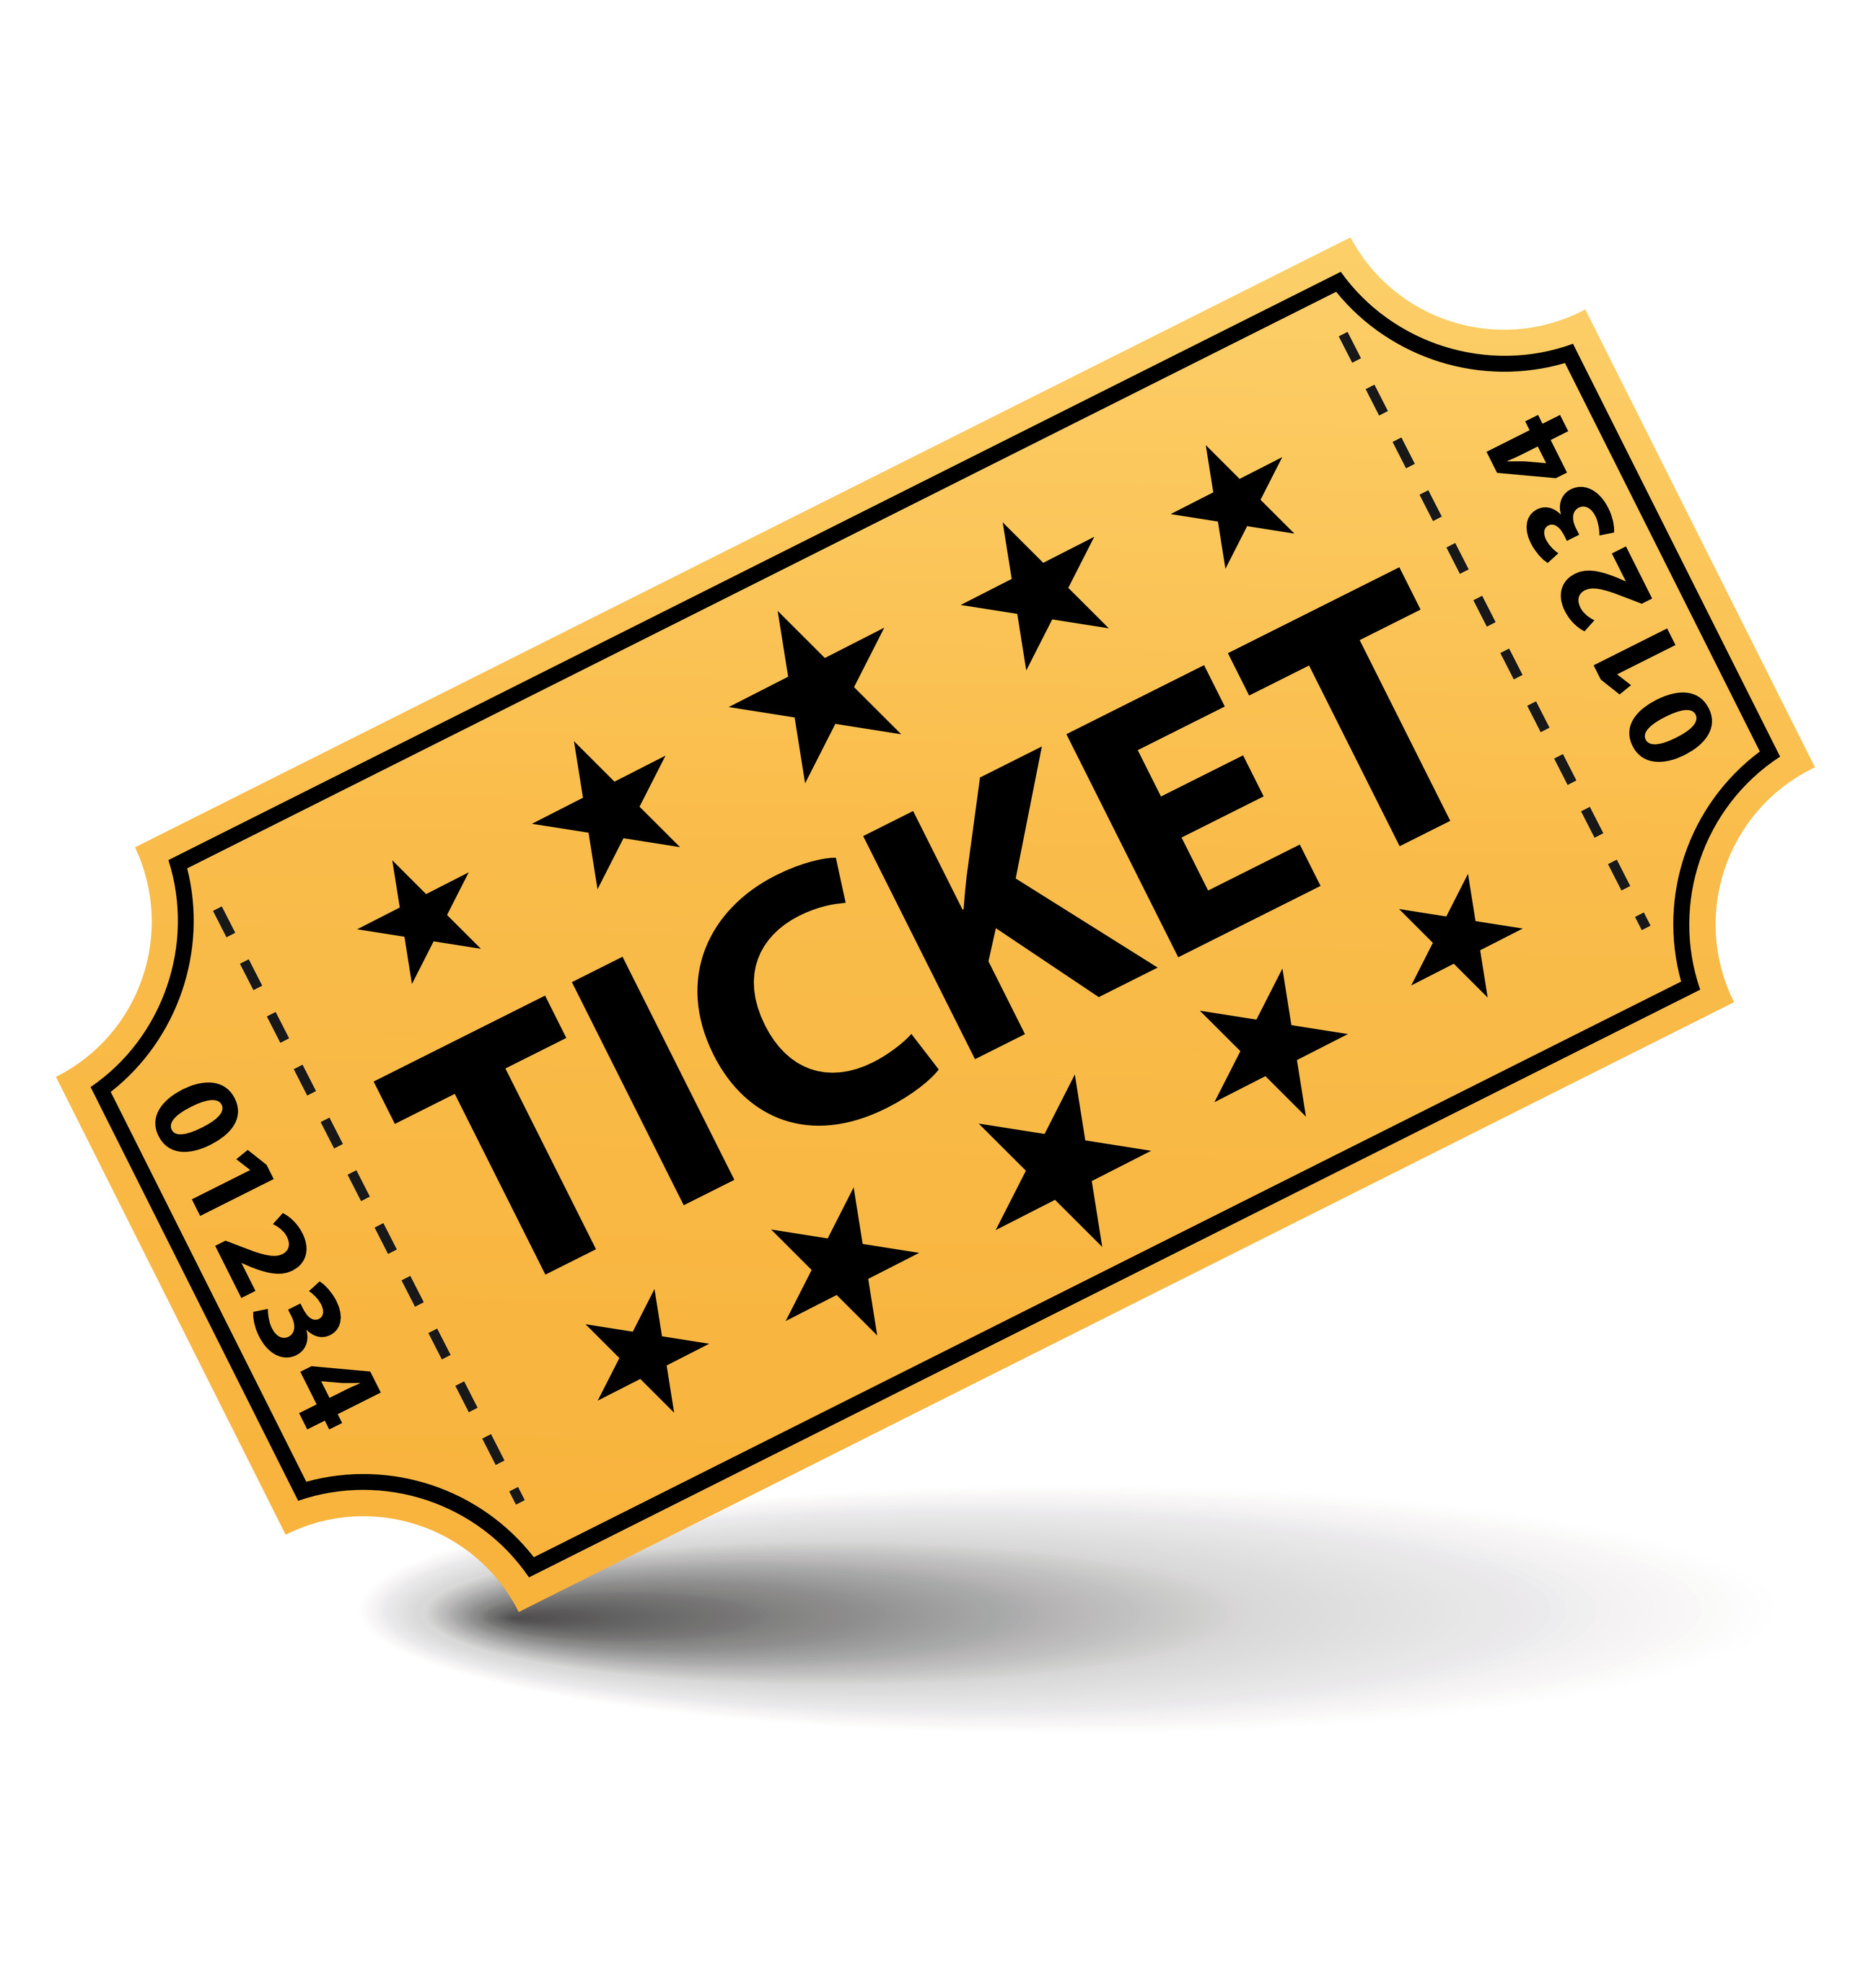 picture royalty free stock Arcade clipart movie ticket. Free raffle cliparts download.